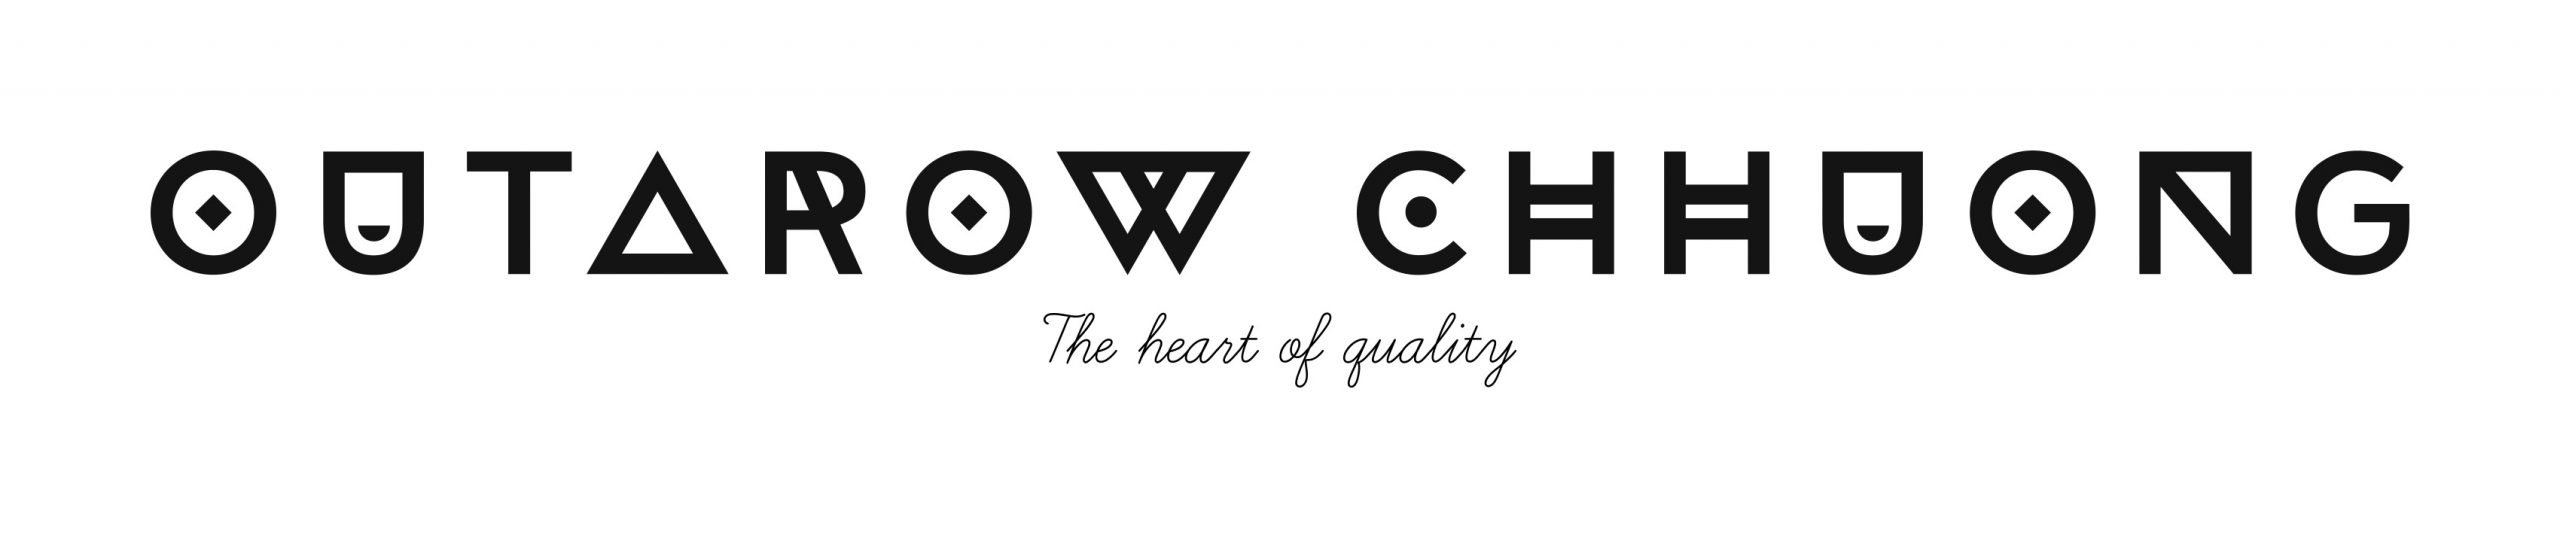 Outarow Chhuong - The heart of quality logo